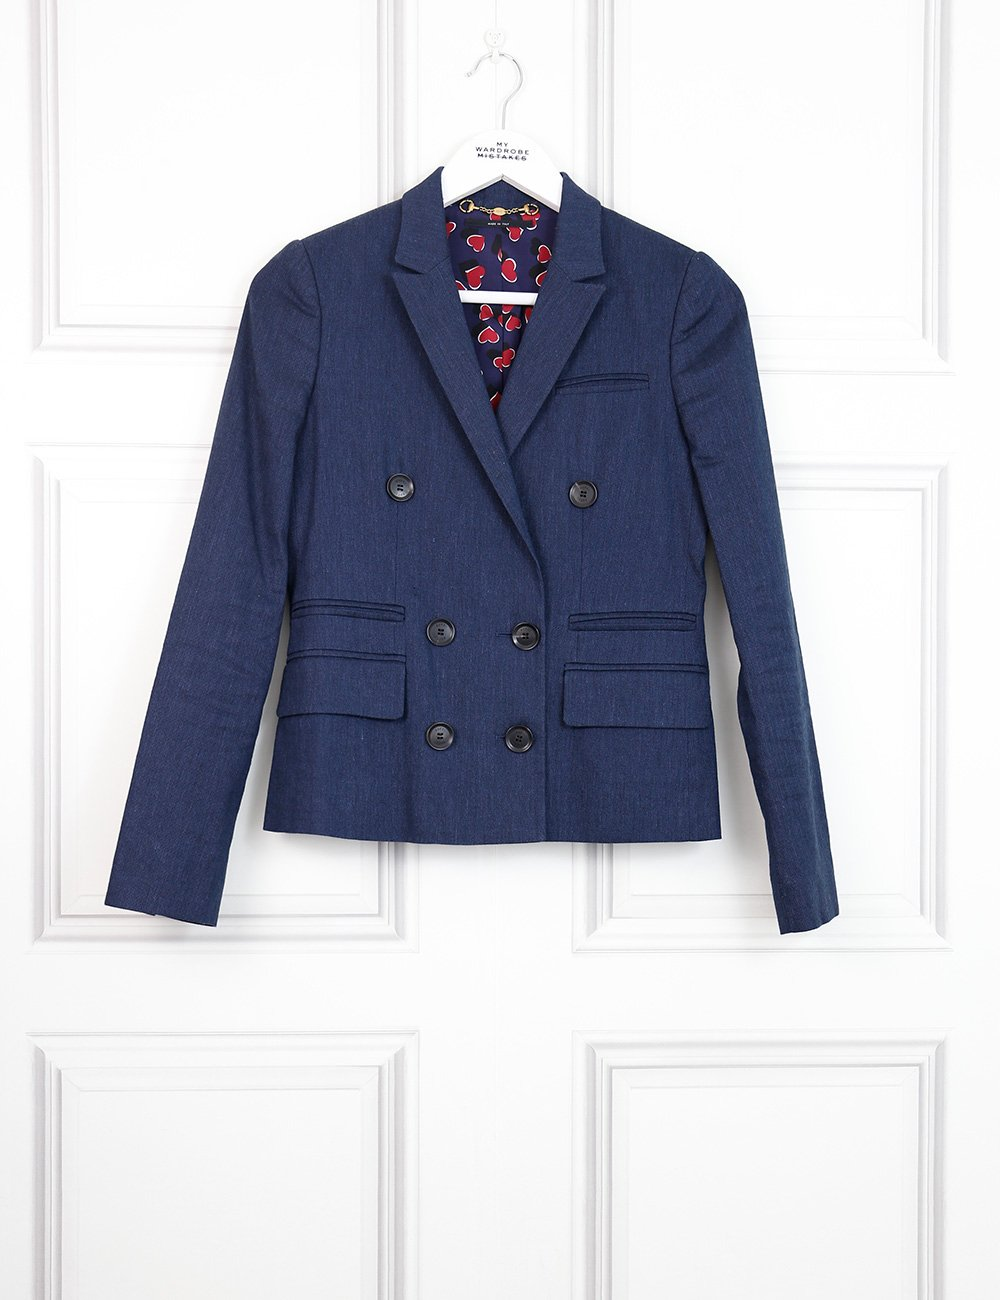 Gucci blue double breasted jacket 10Uk- My Wardrobe Mistakes